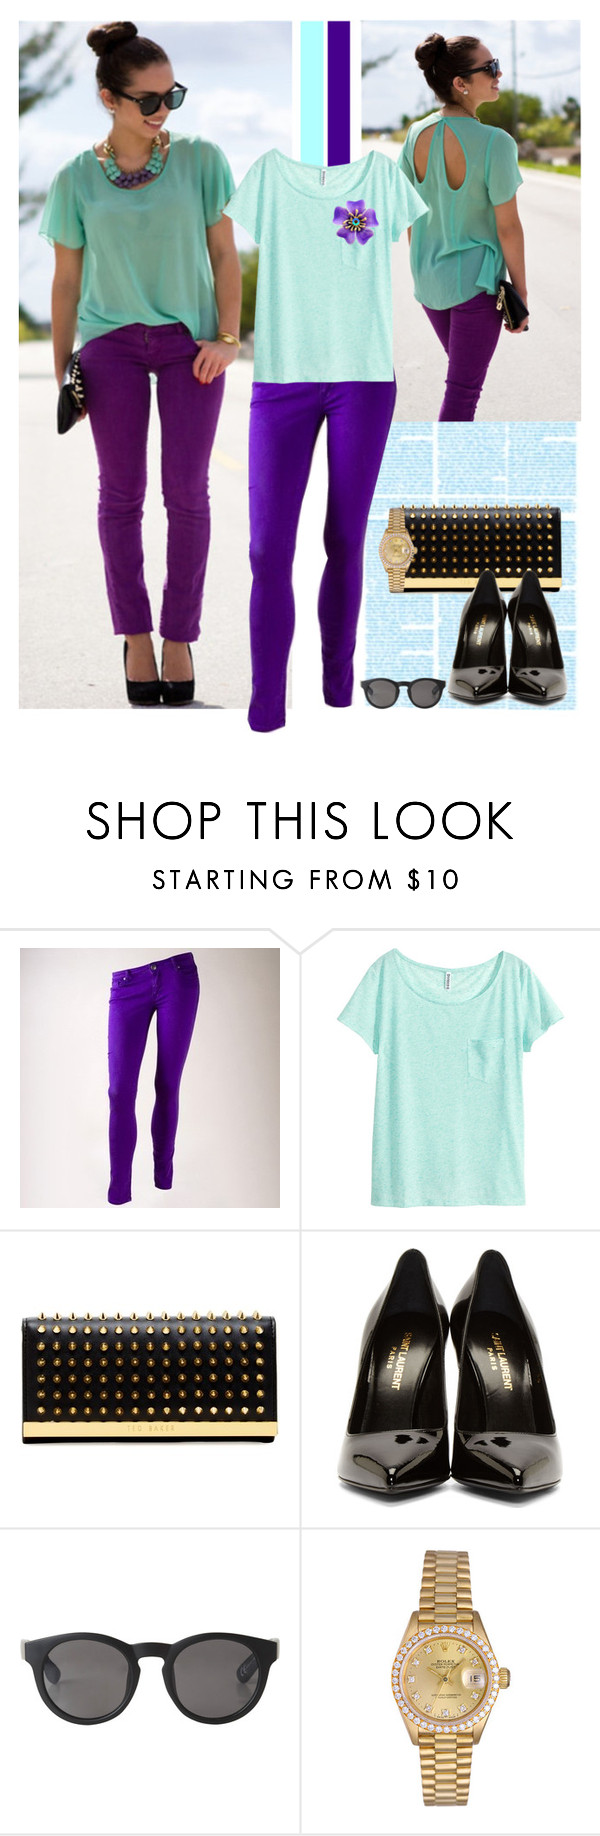 """Purple and Mint"" by majezy ❤ liked on Polyvore featuring Vigoss, H&M, Ted Baker, Yves Saint Laurent, Monki, Rolex, women's clothing, women's fashion, women and female"